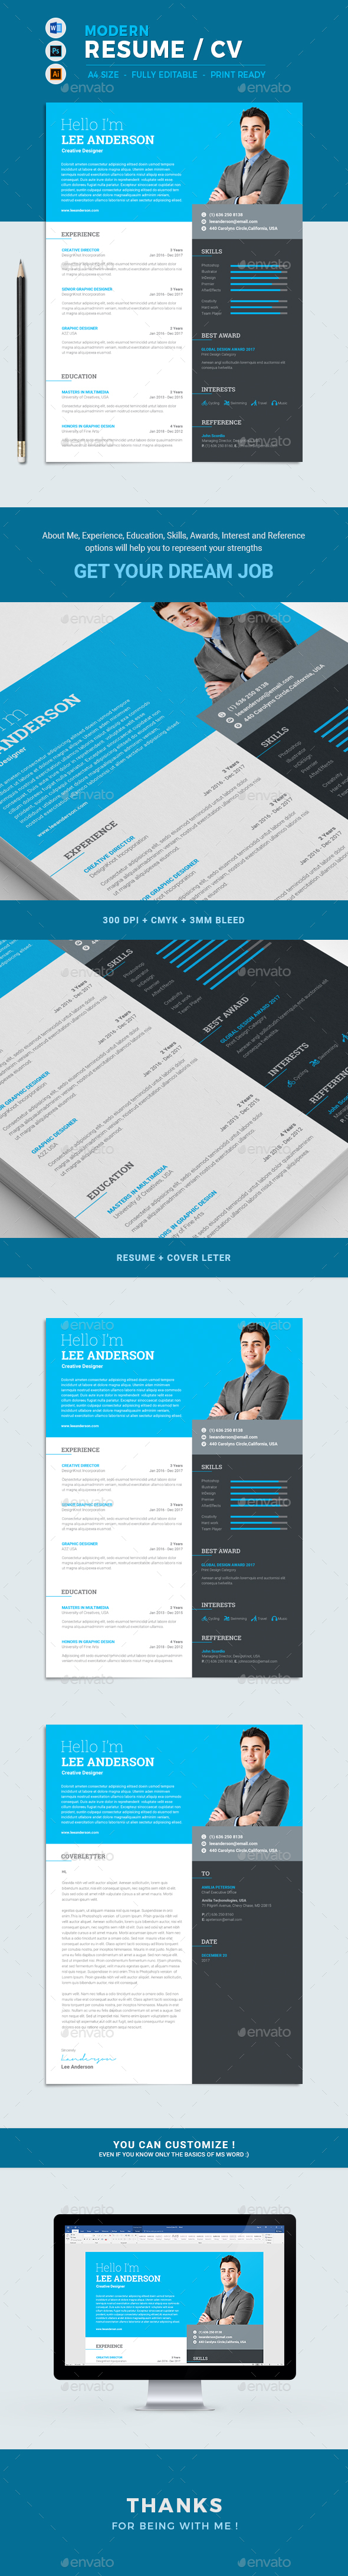 resume by zumanuruzzal